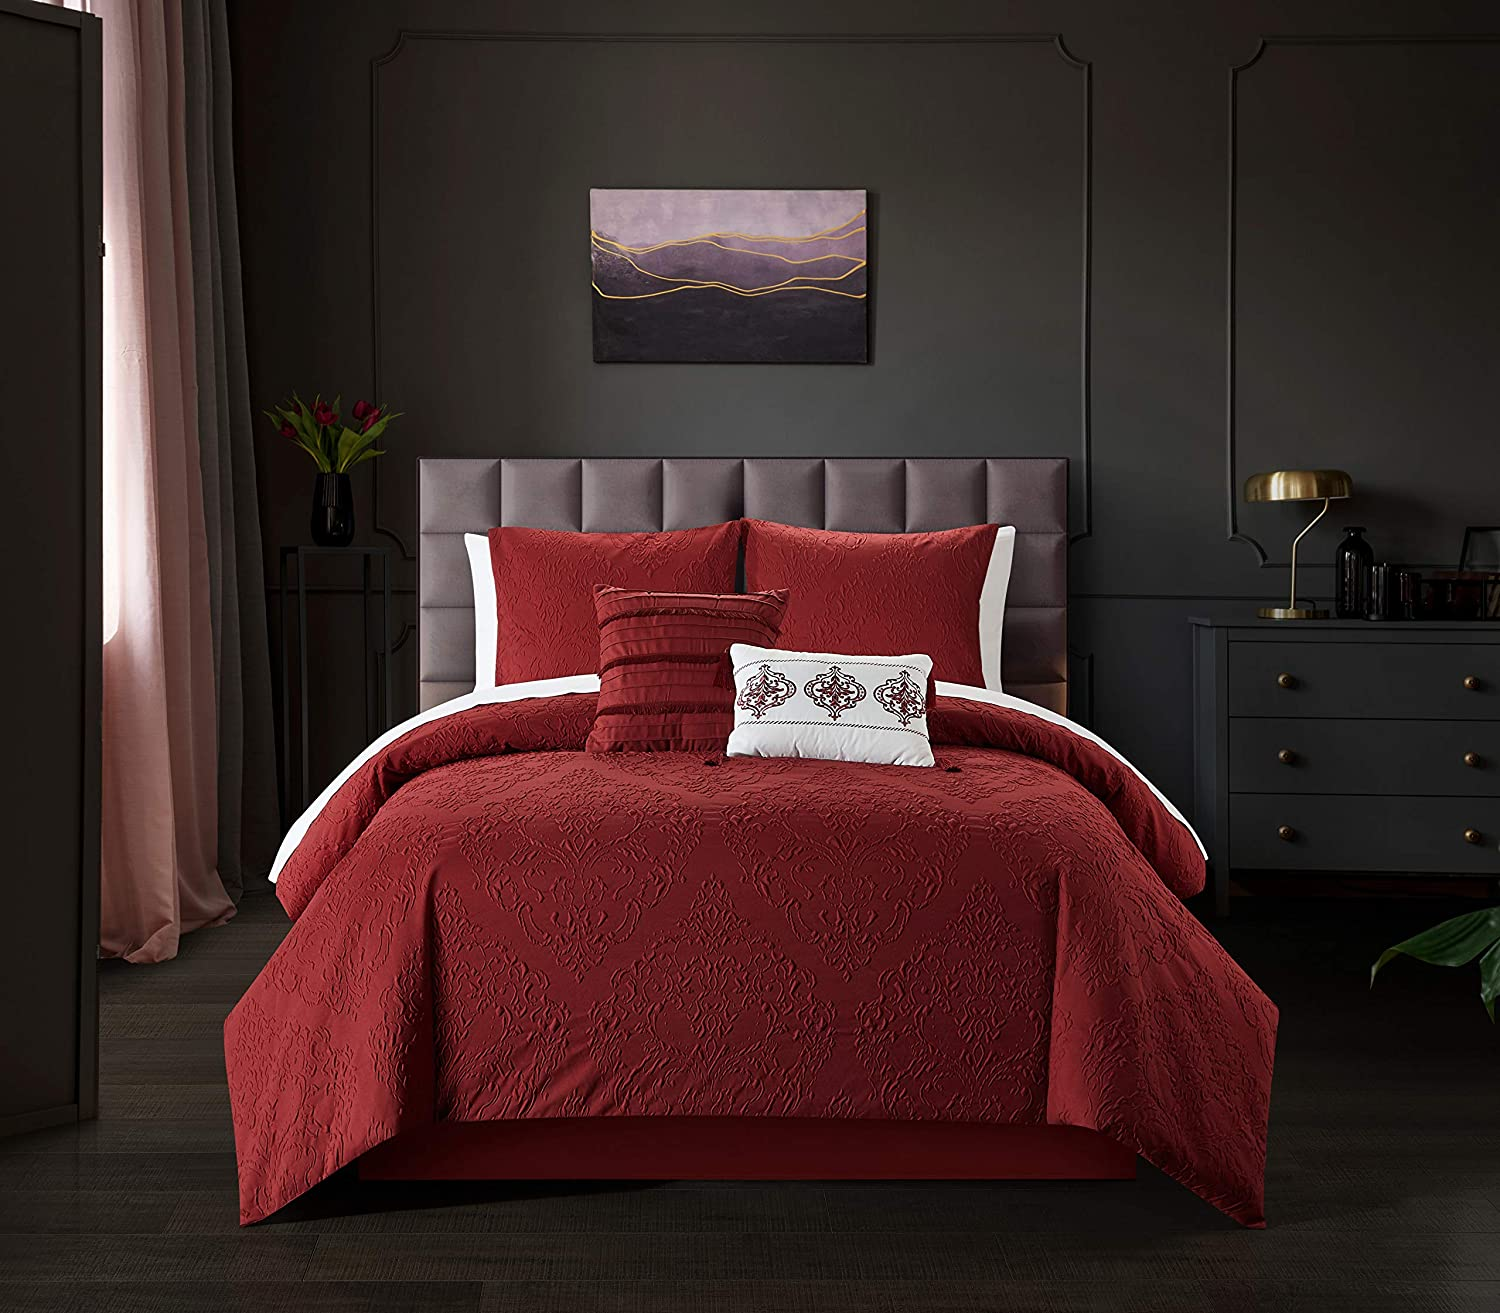 Chic Home Mayflower 5 Piece Comforter Set Embossed Medallion Scroll Pattern Design Bedding - Decorative Pillows Shams Included, Queen, Brick, Brick red